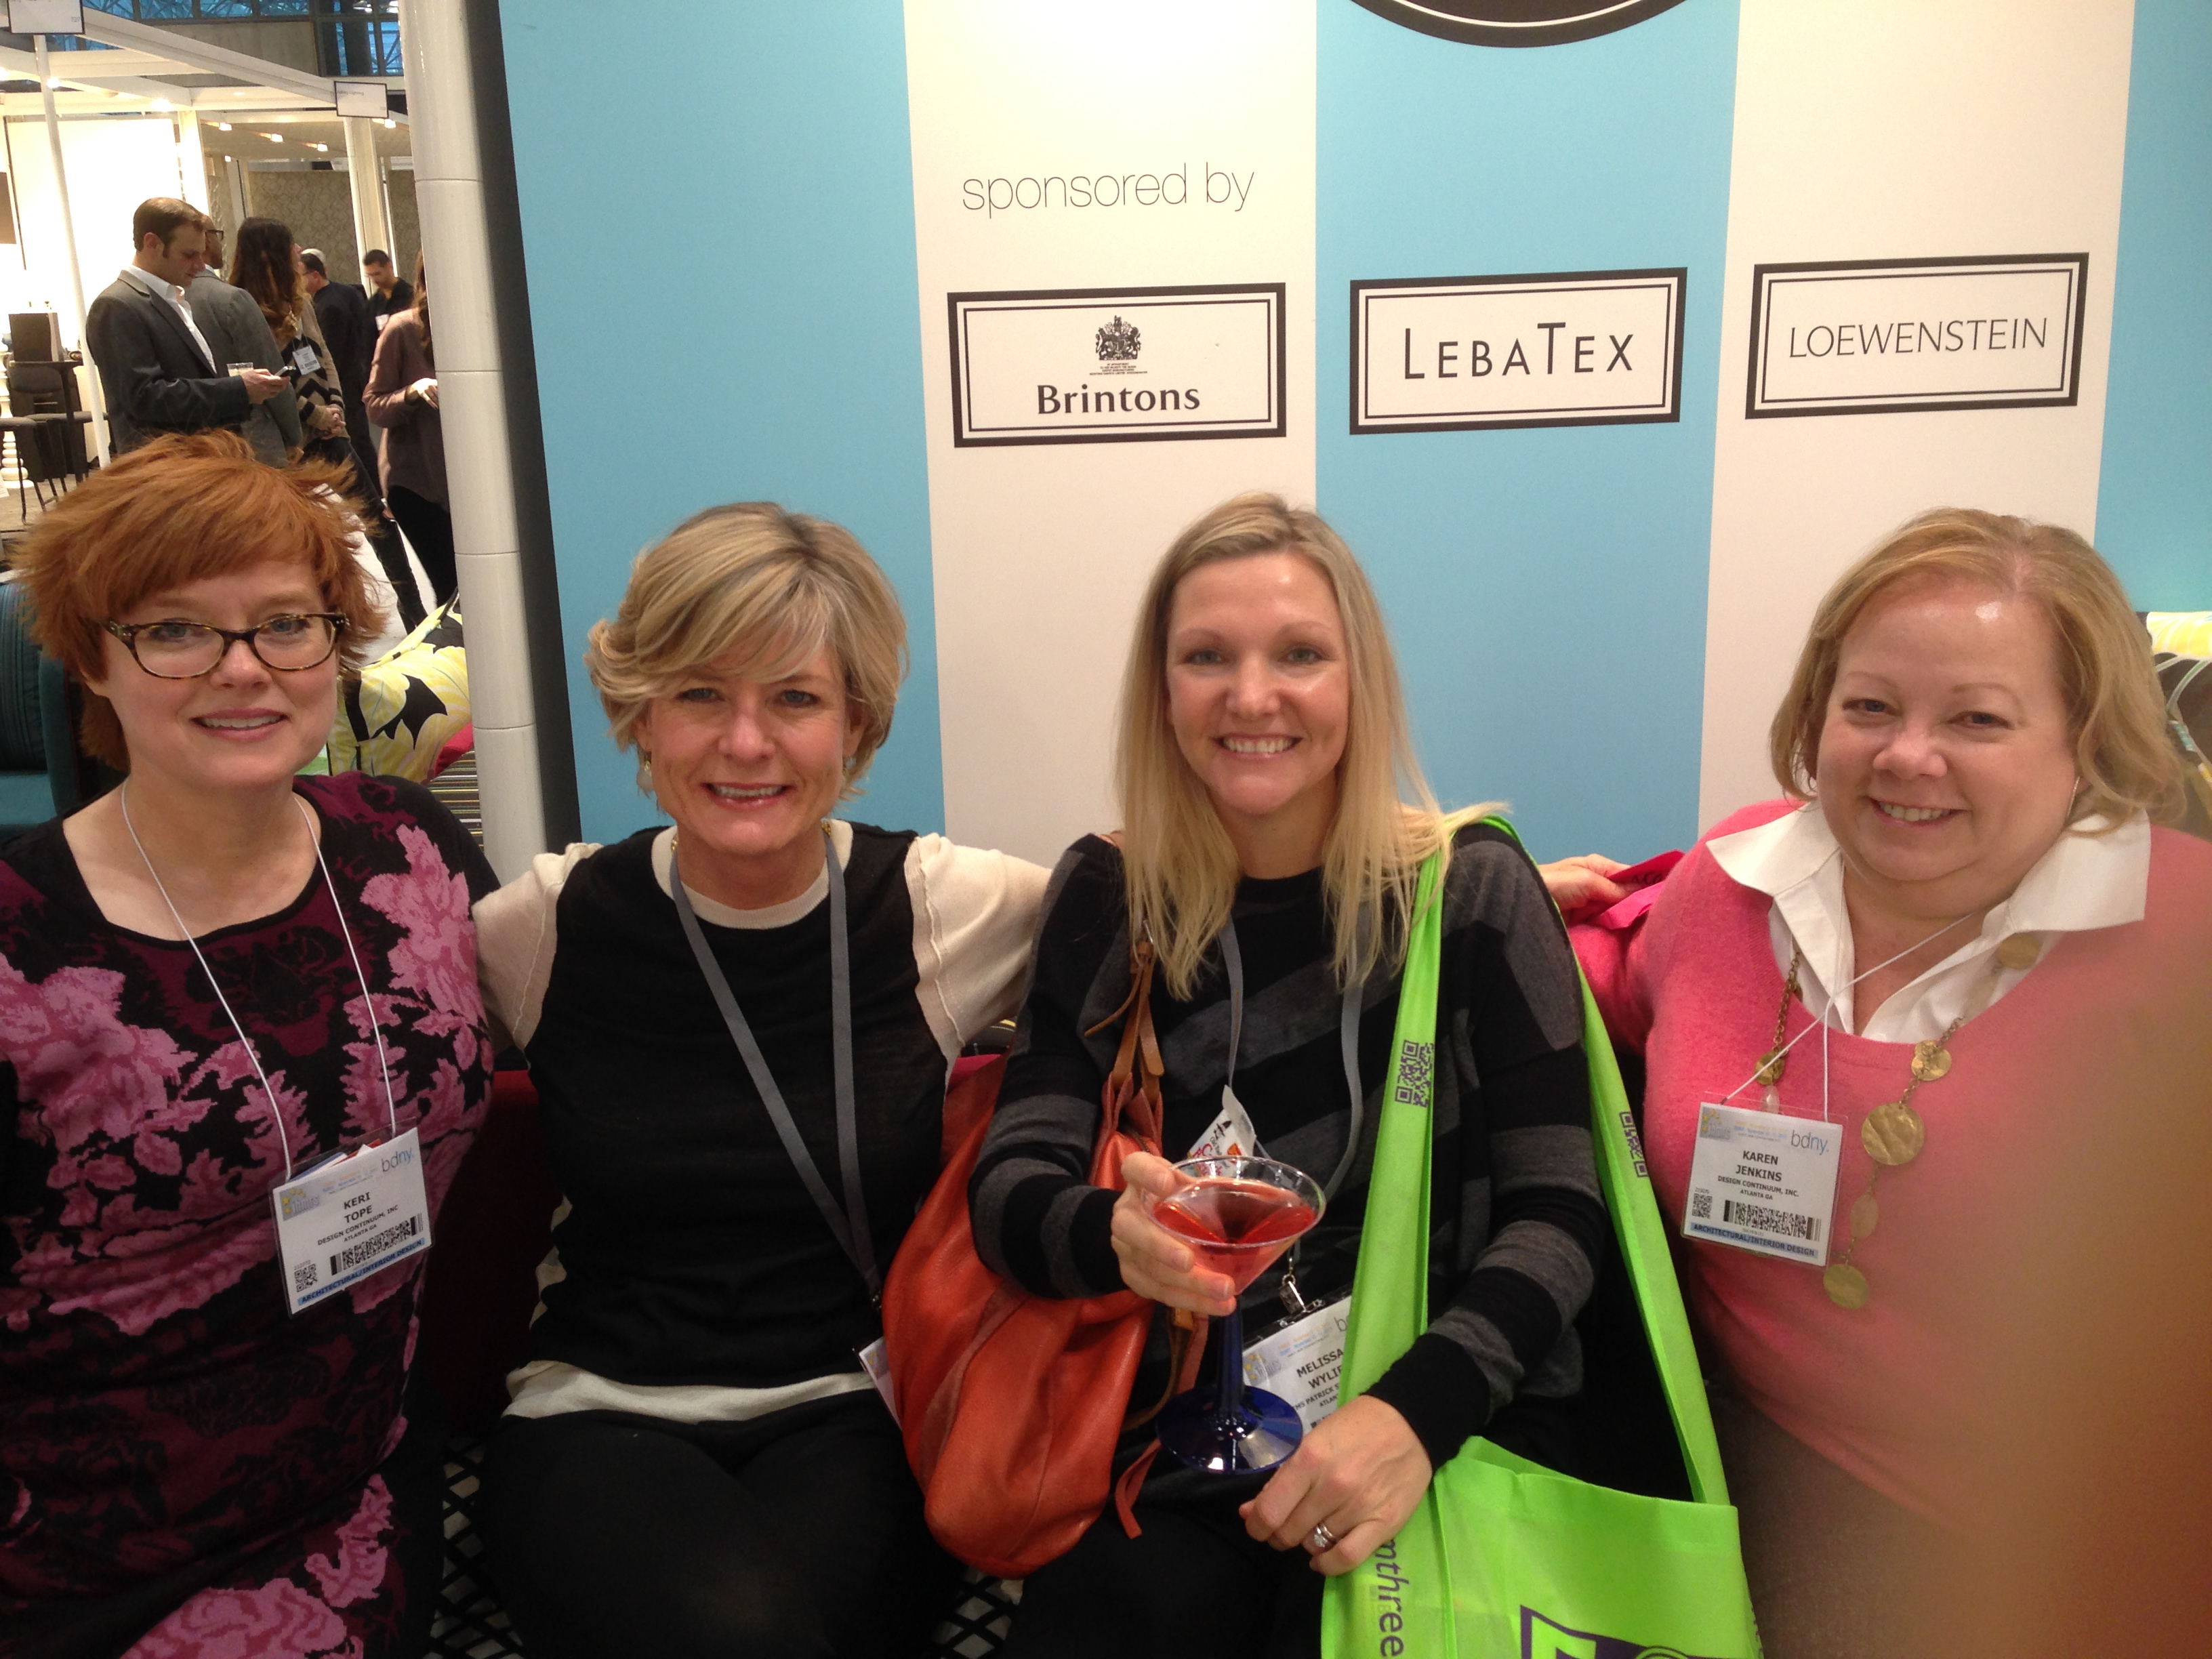 Libby, Melissa, & Friends at BDNY 2014